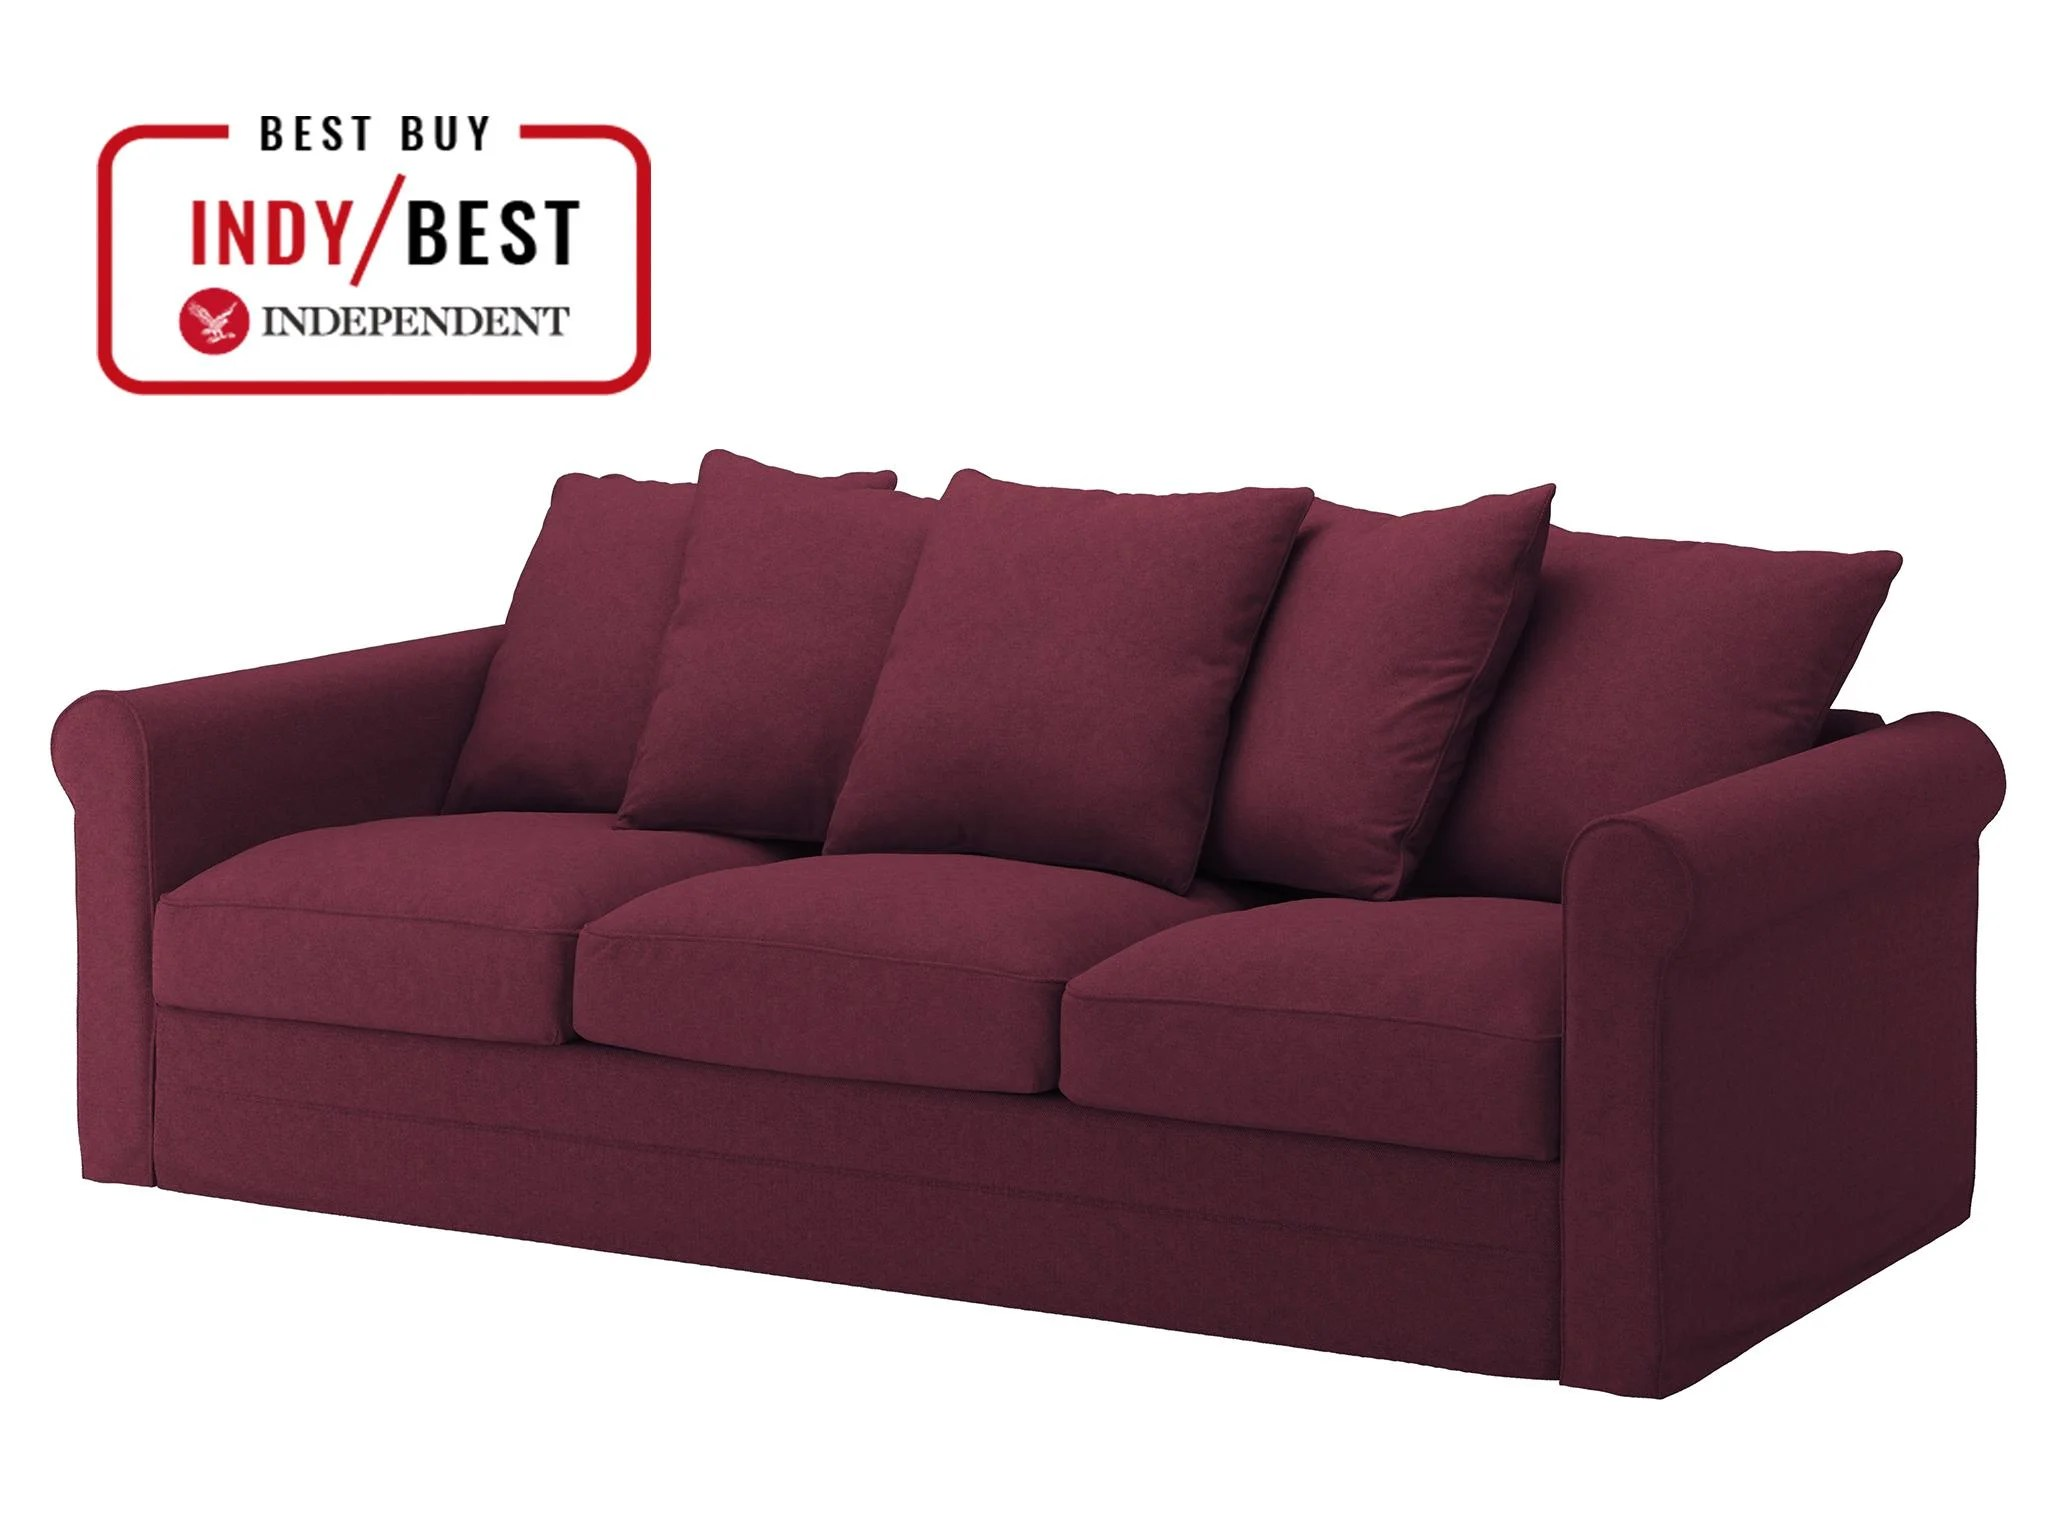 Sofa Uk Ikea 8 Best 3 Seater Sofas The Independent